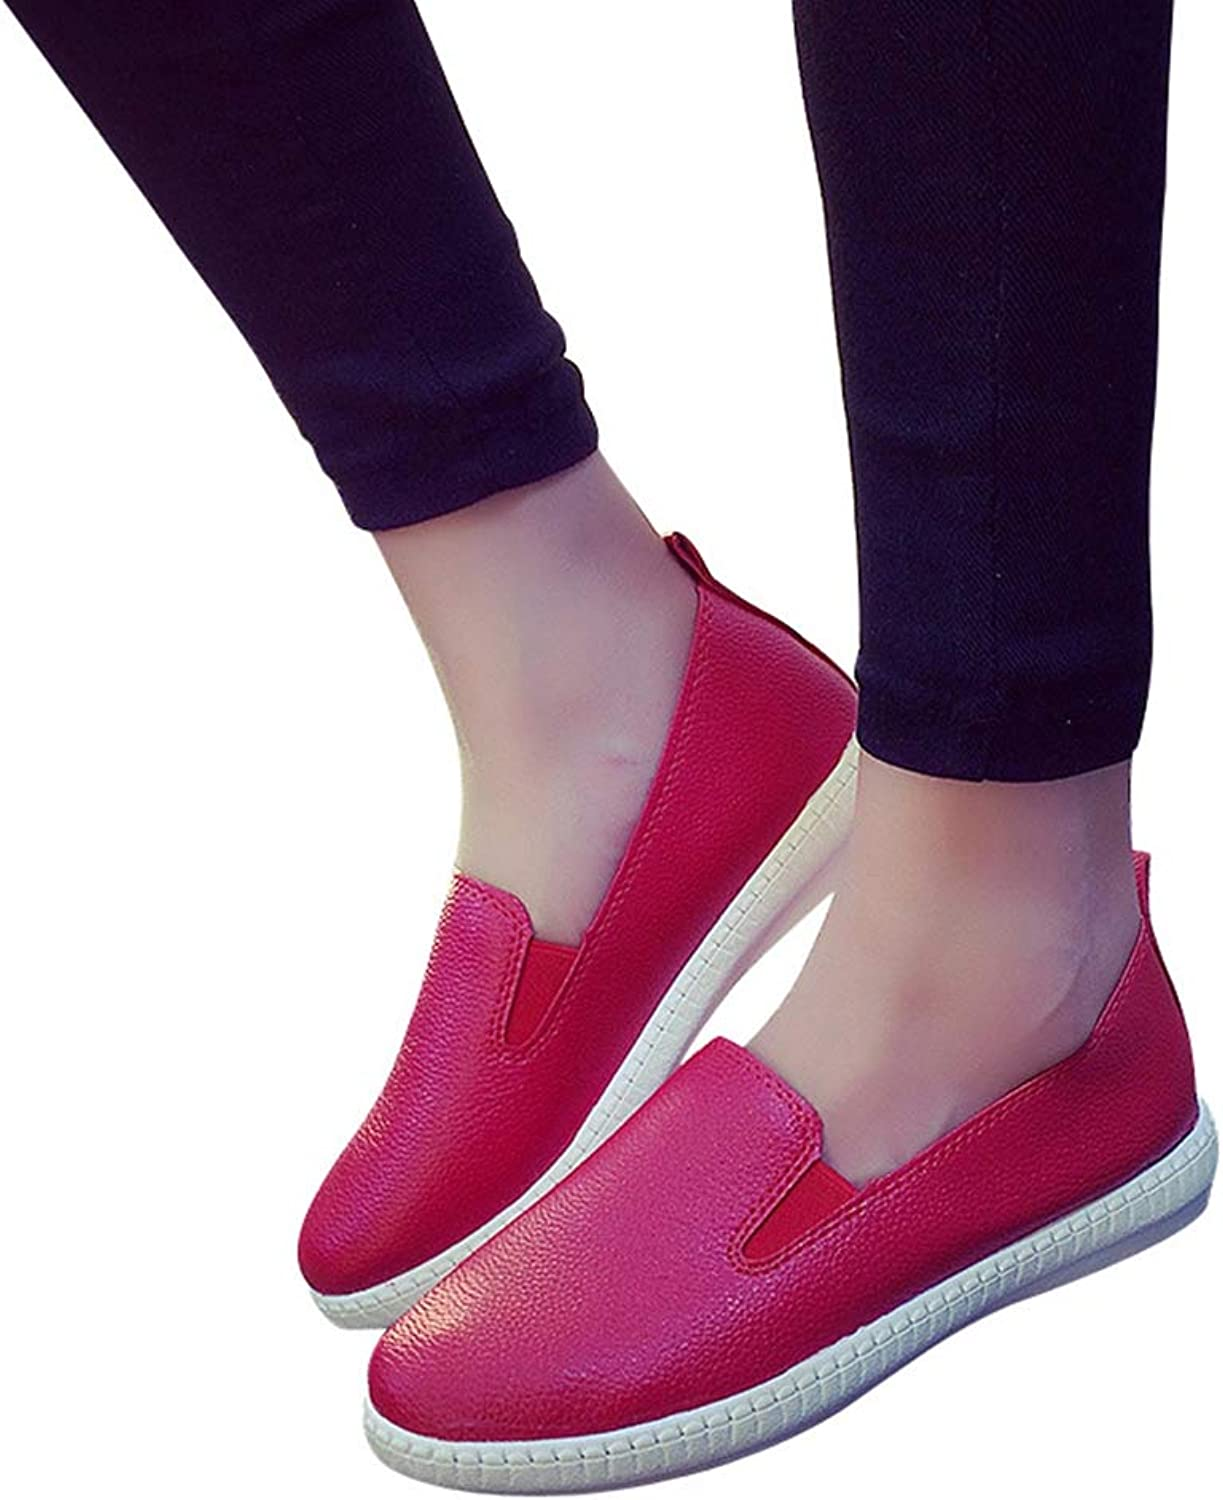 T-JULY Casual Flat shoes Woman Spring Solid Loafers Slip On Flats Fashion Round Toe Women shoes 3 colors Size 35-40